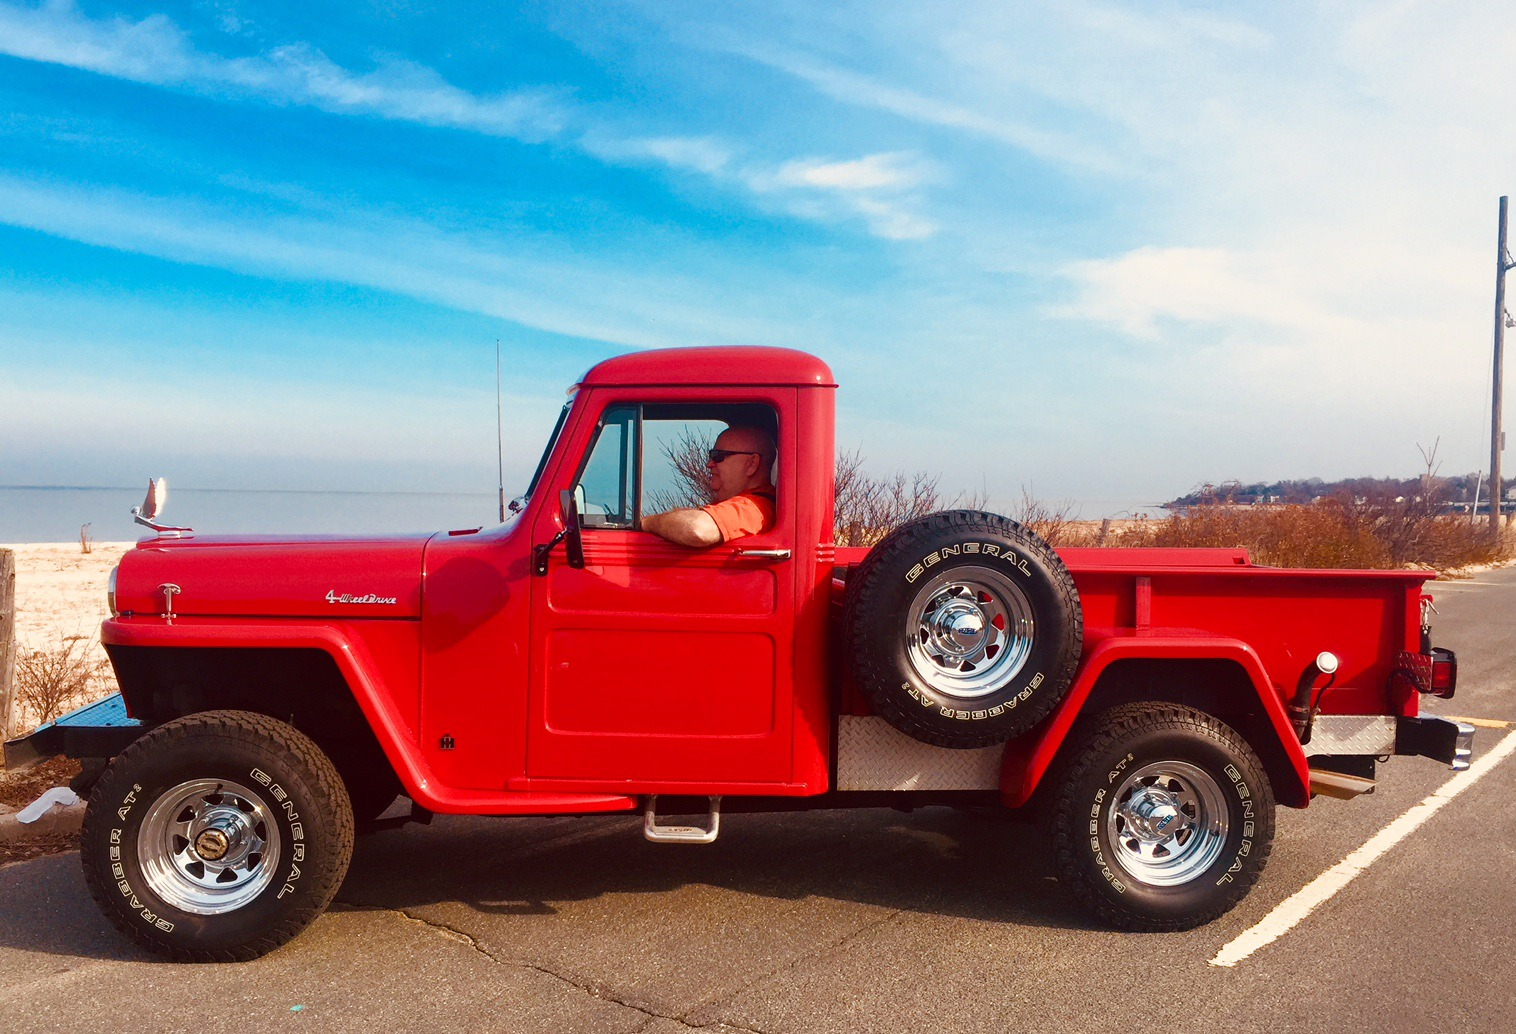 Willys Jeep For Sale >> 1947 Jeep Willys Truck Stock # 1947WILLYSTRUCK for sale ...